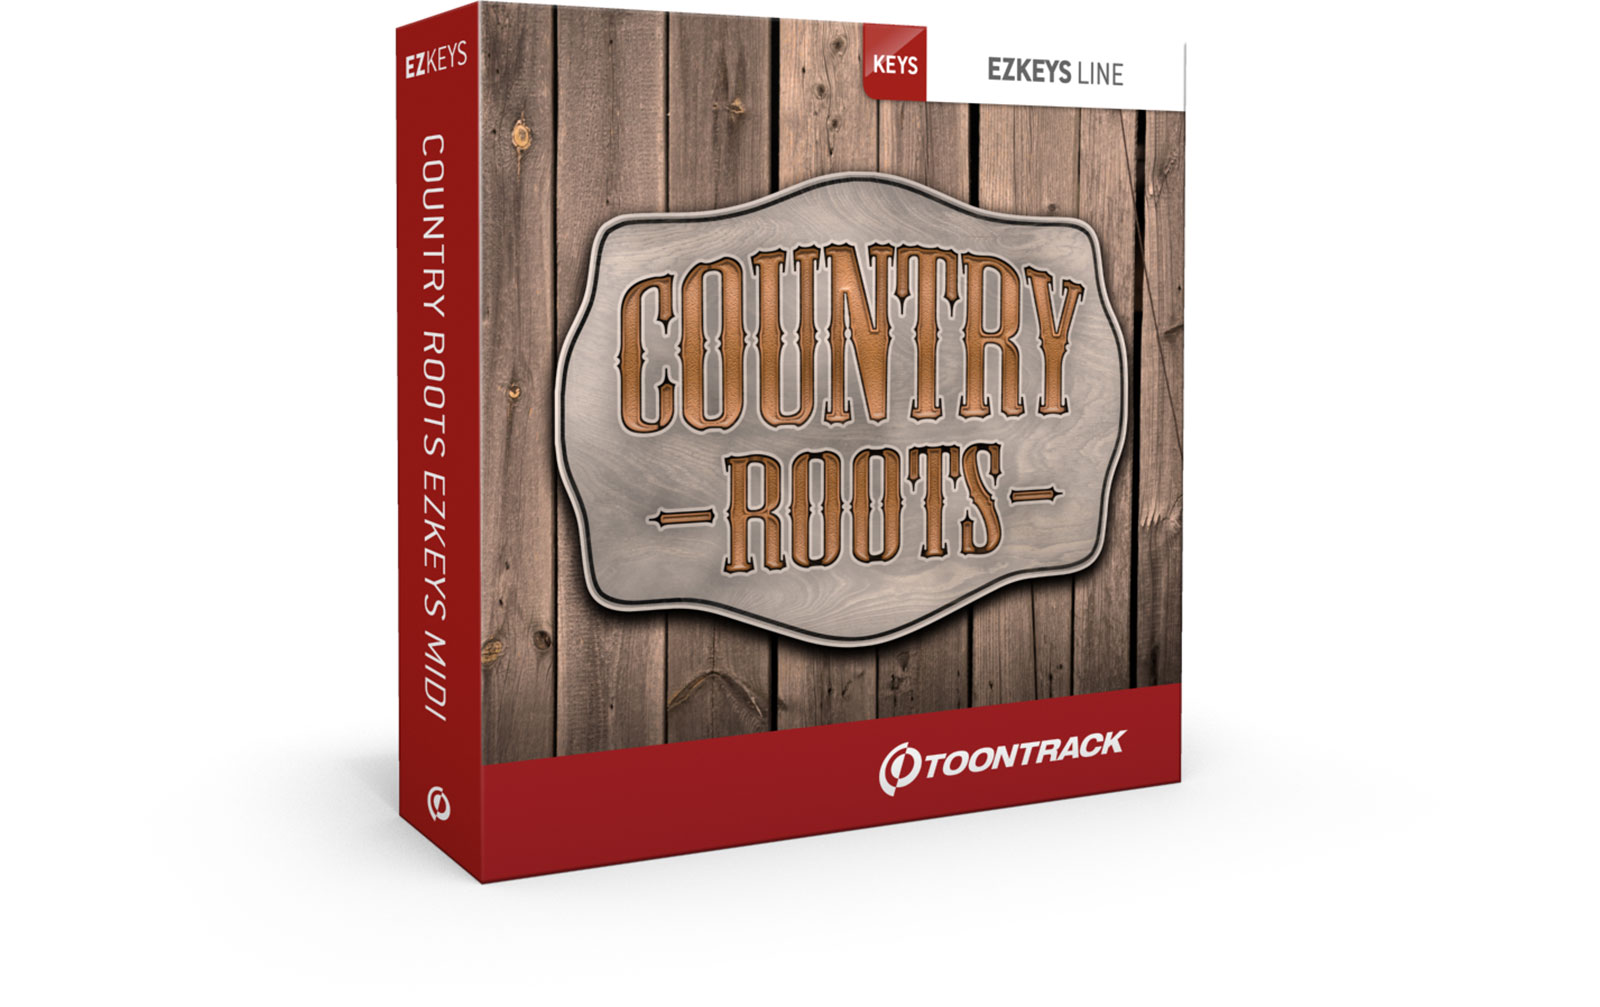 toontrack-ezkeys-country-roots-midi-pack-download-